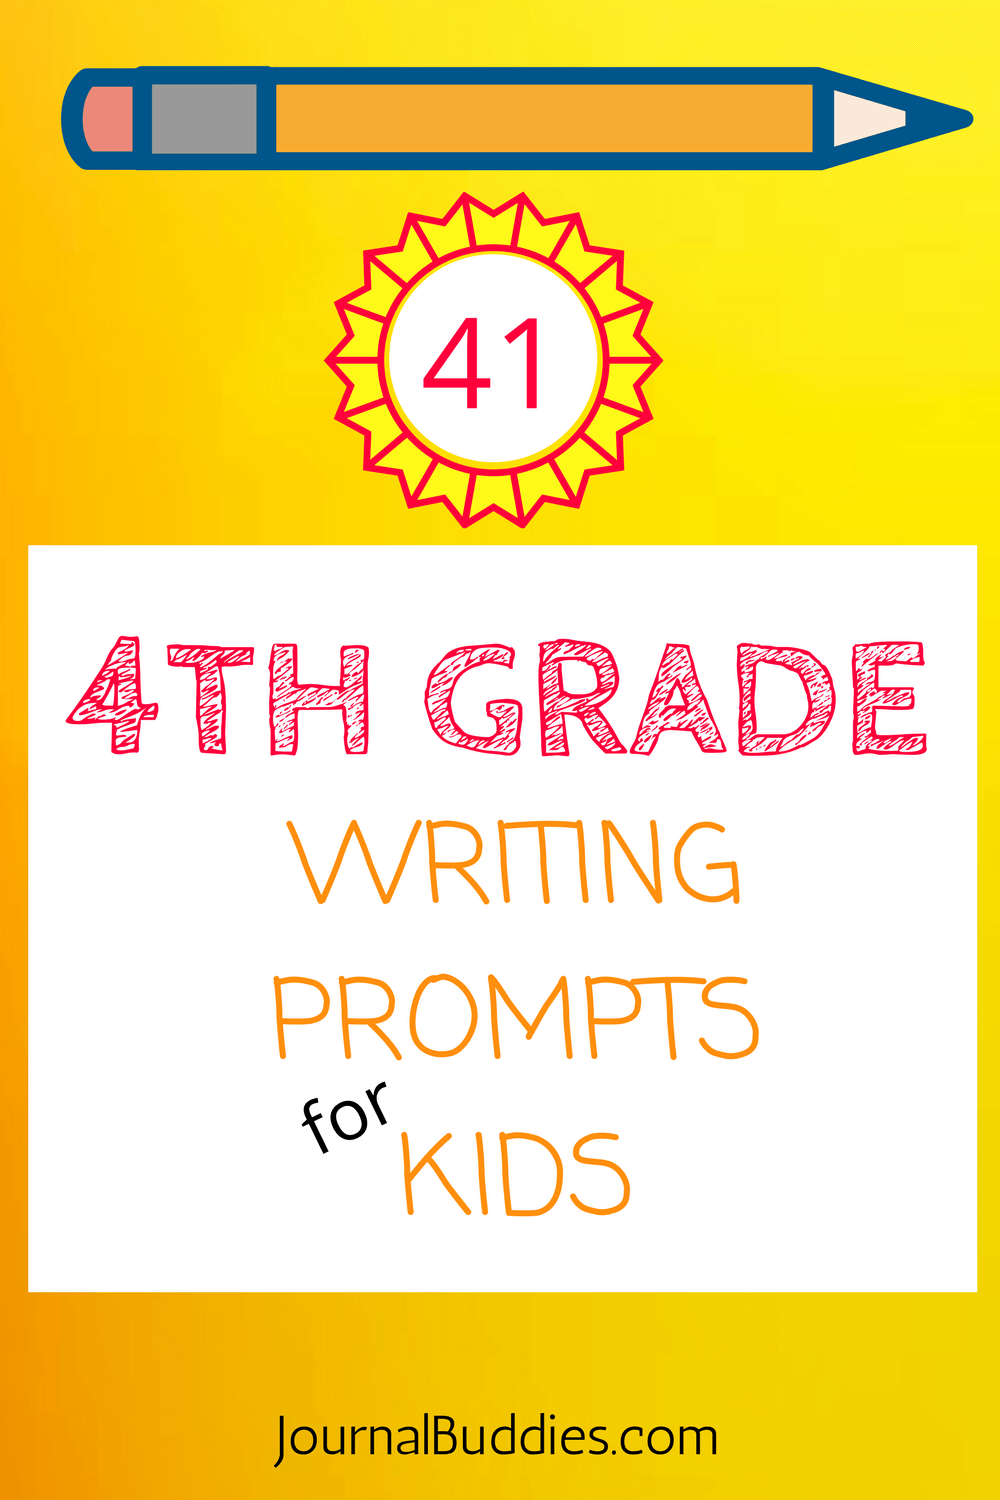 Writing Prompts for 4th Grade